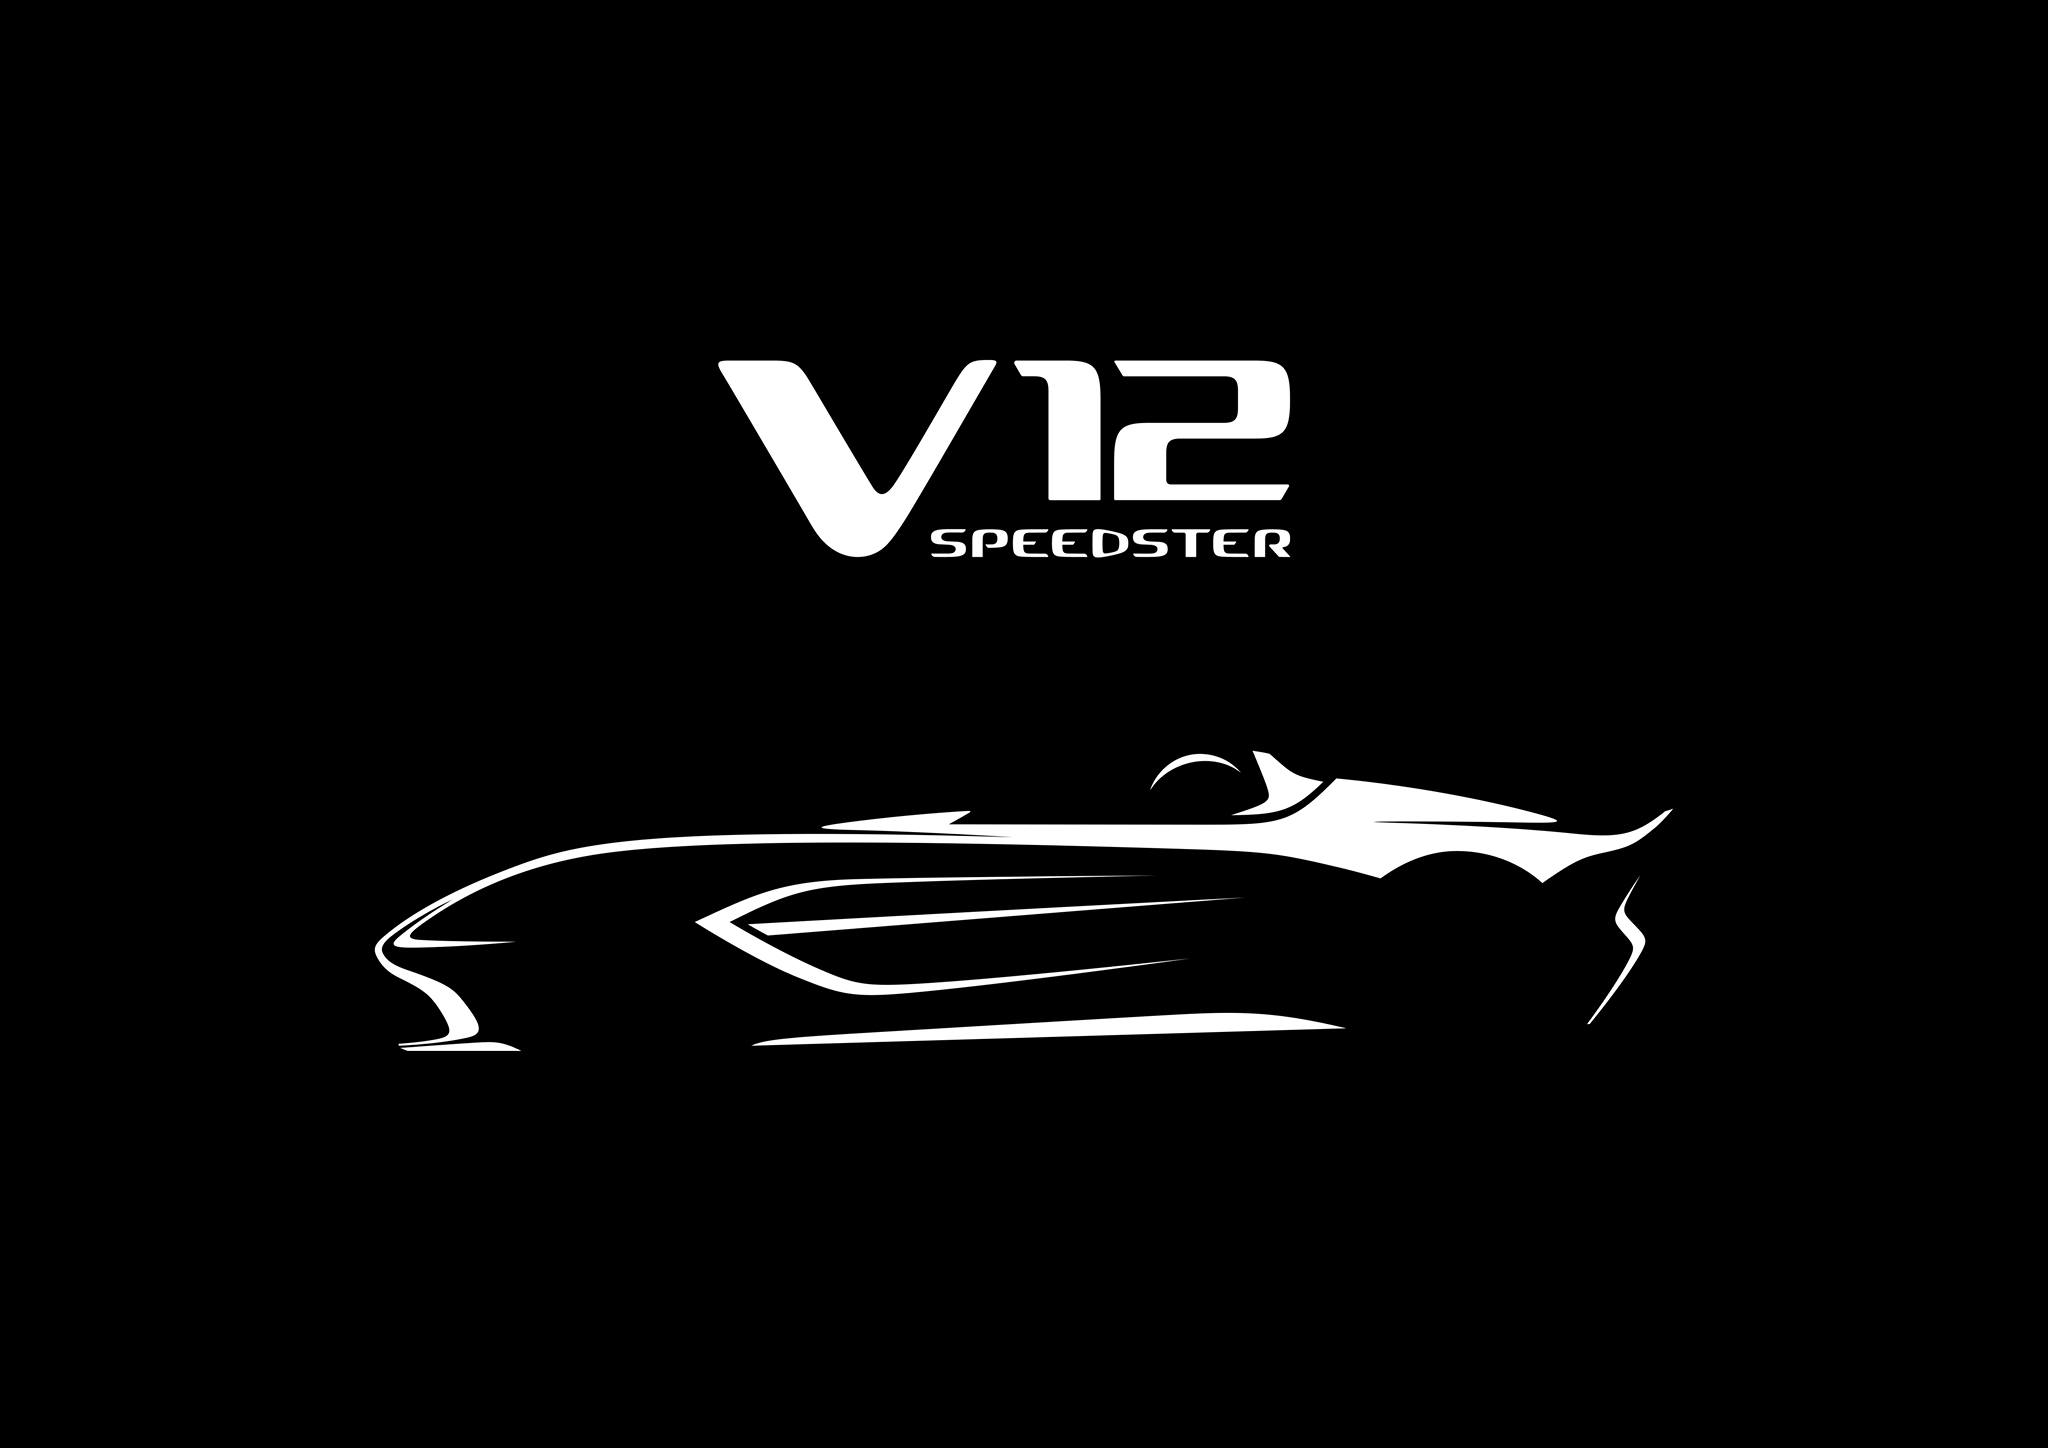 New Aston Martin Speedster to Debut This Year